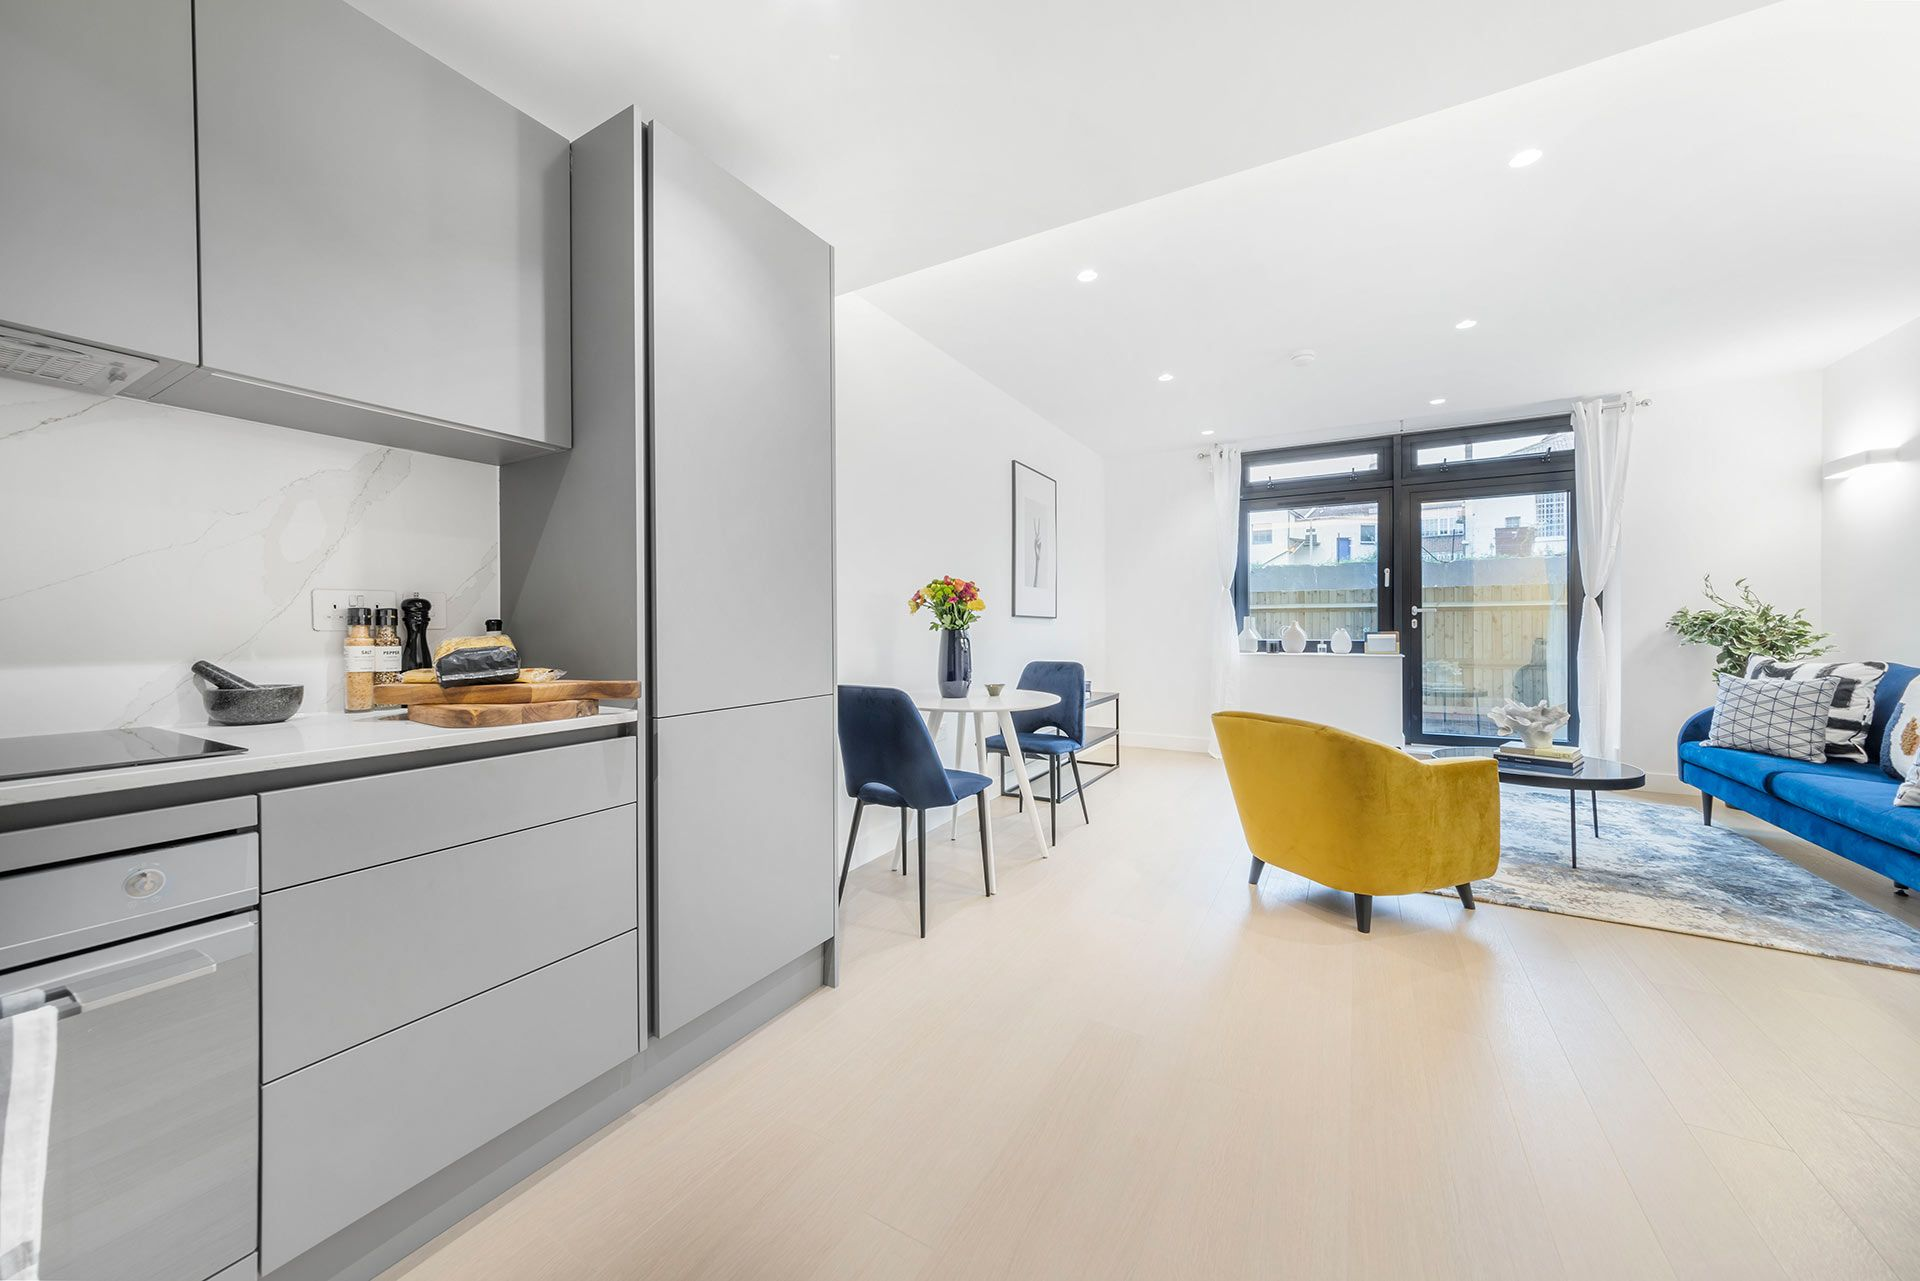 2 Bedroom apartment to rent in London SKI-VH-0059